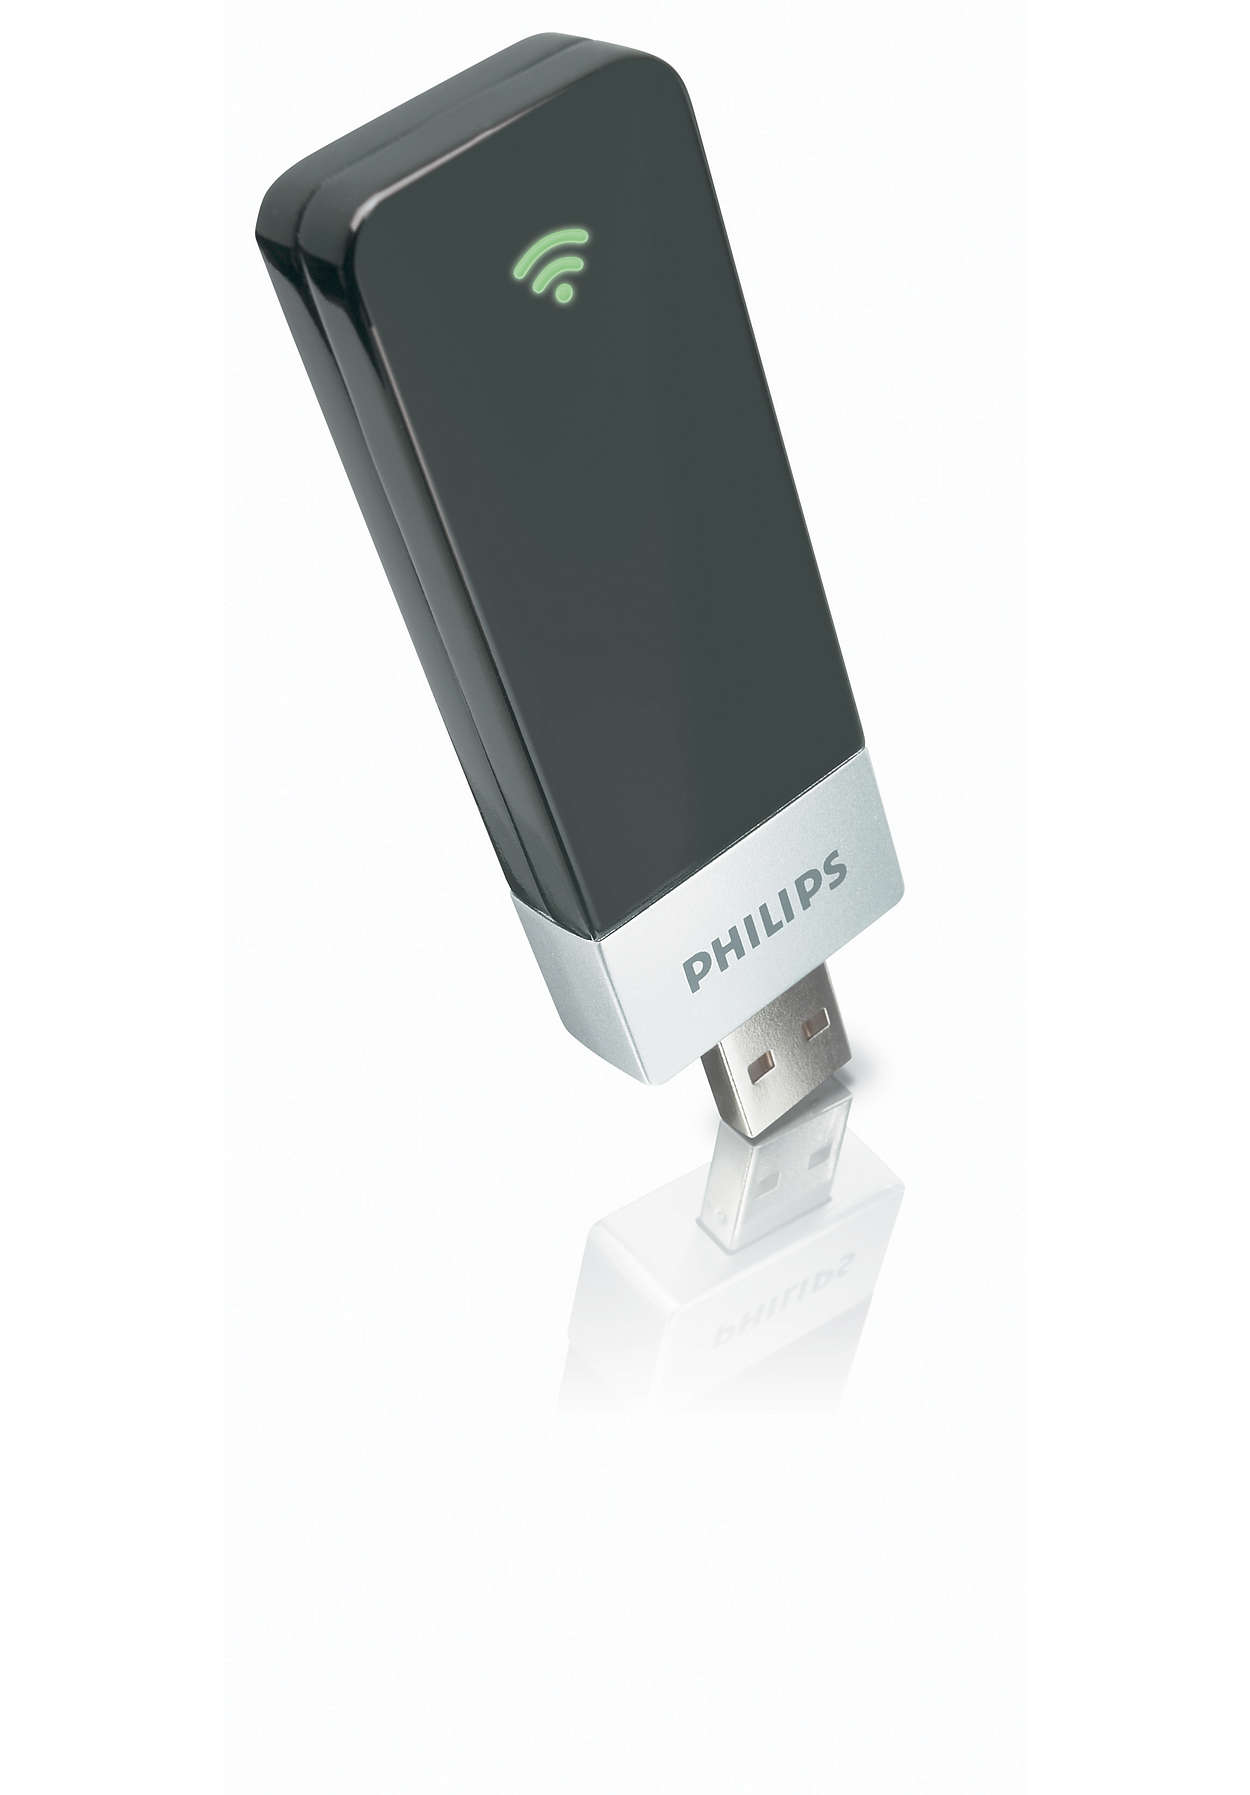 Adattatore USB wireless